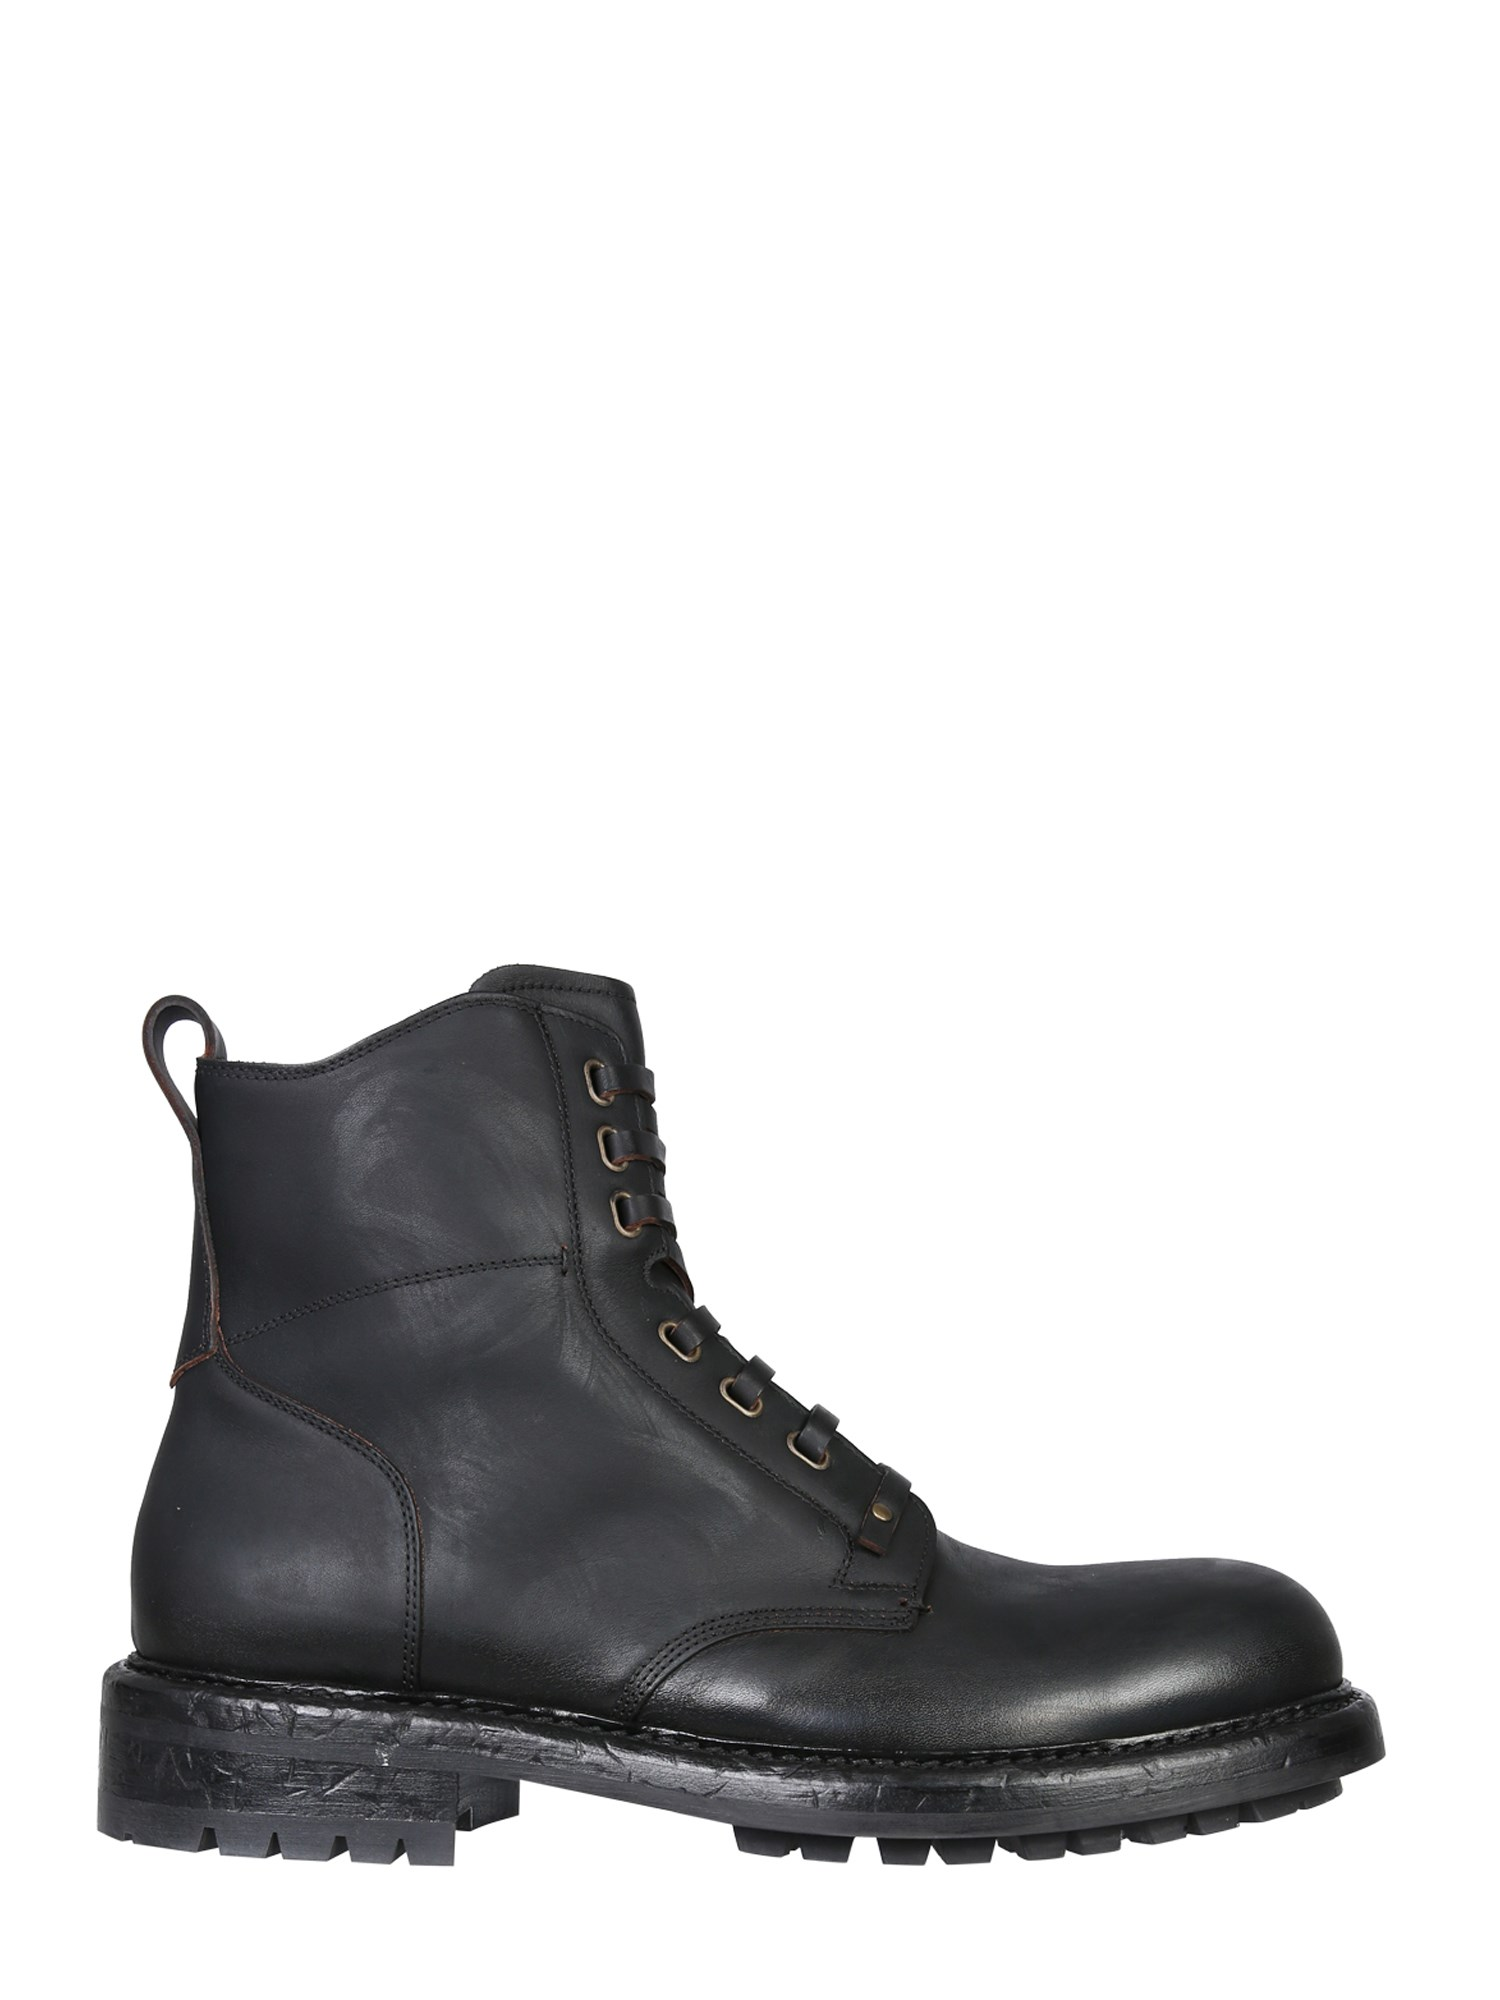 Dolce & Gabbana Shoes LEATHER BOOTS